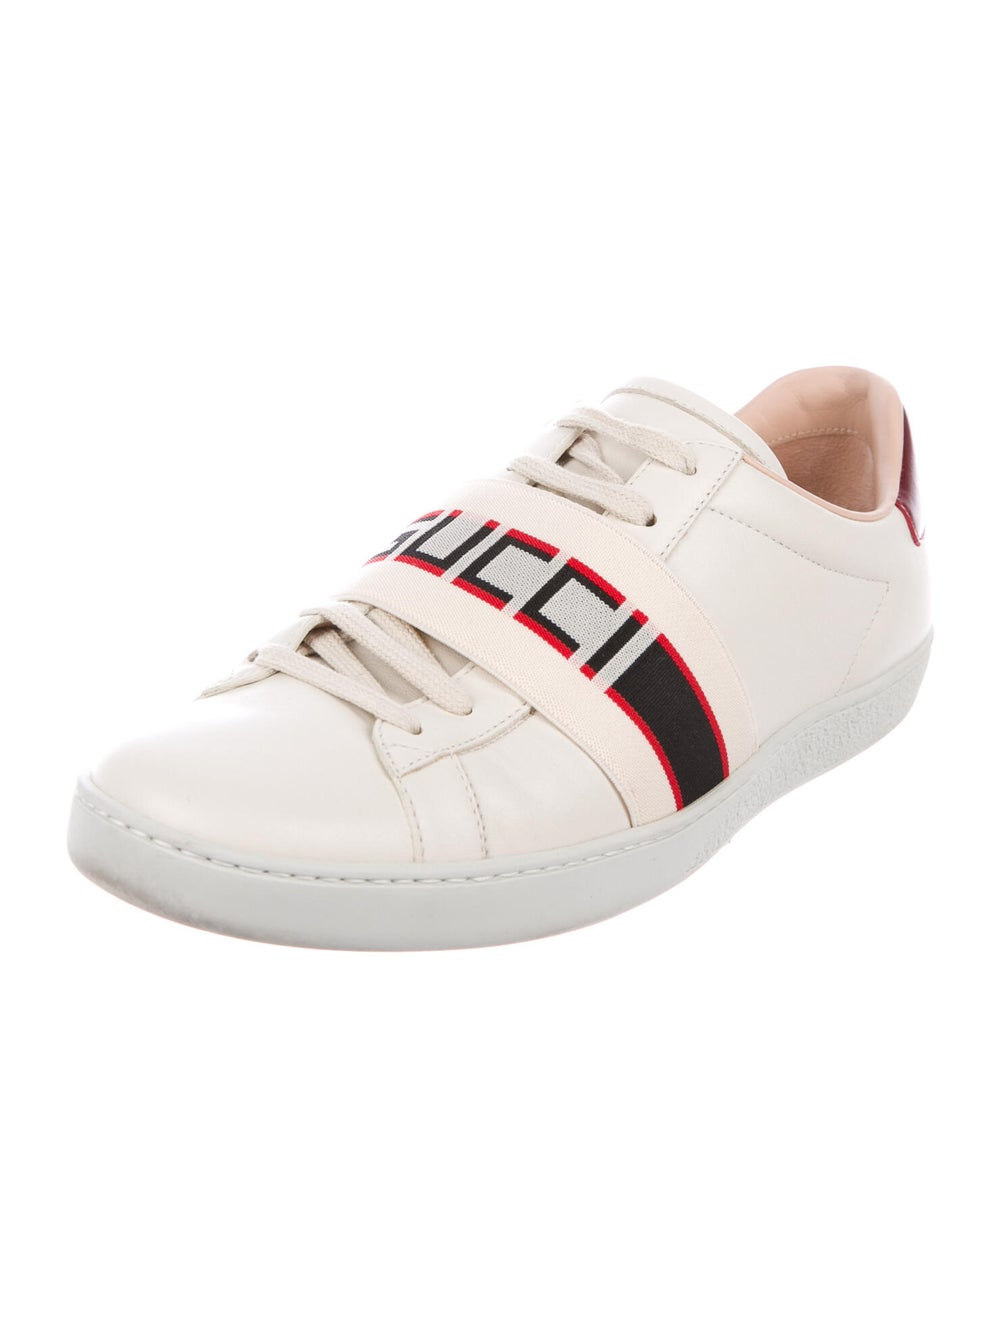 Gucci Ace Sneakers - image 2